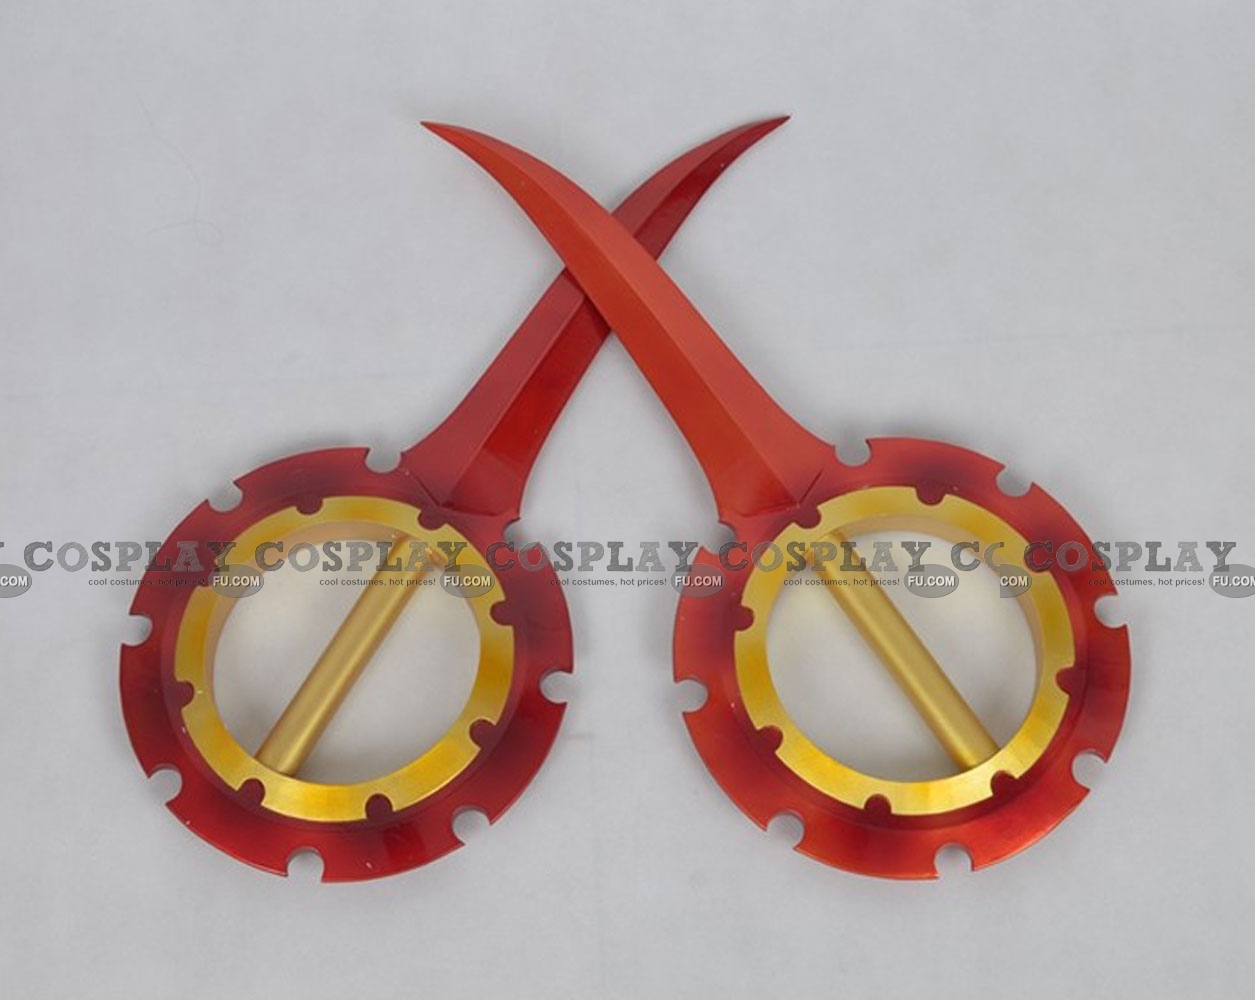 Rikku Daggers (DX18) from Final Fantasy